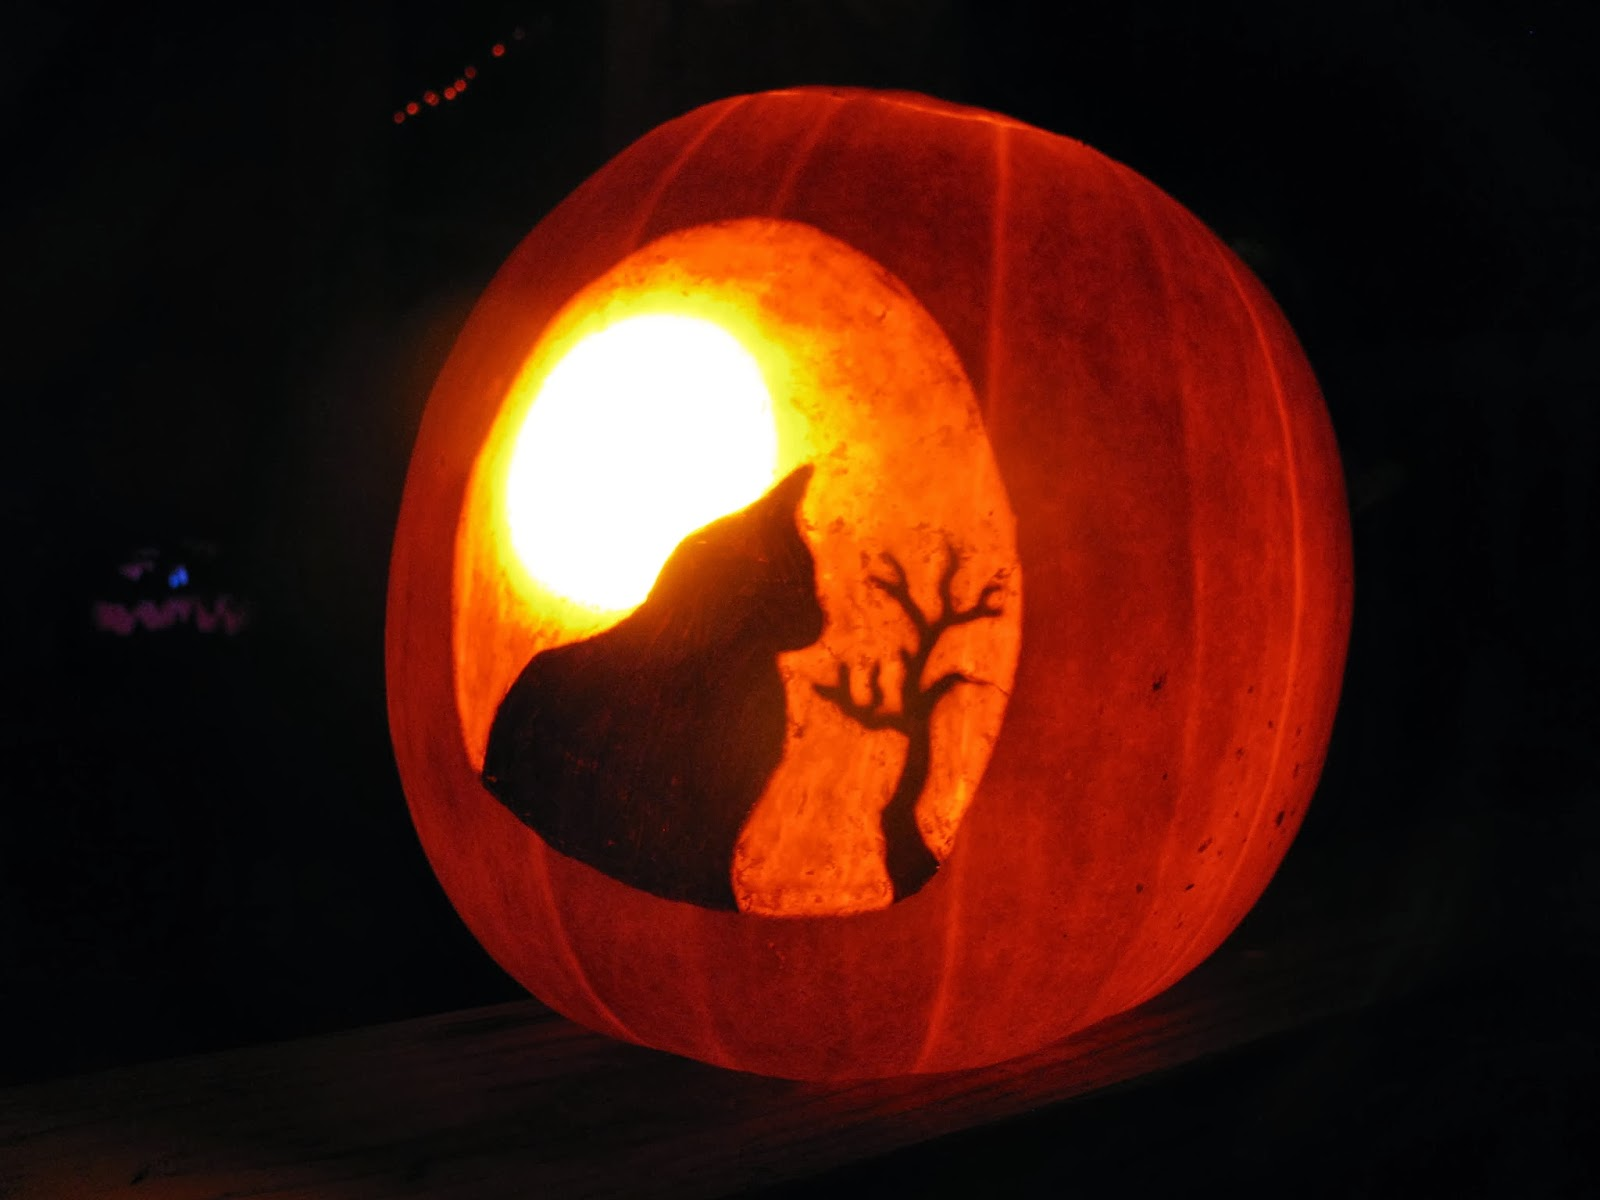 Pumpkin carving ideas for halloween 2017 some of the best Awesome pumpkin designs